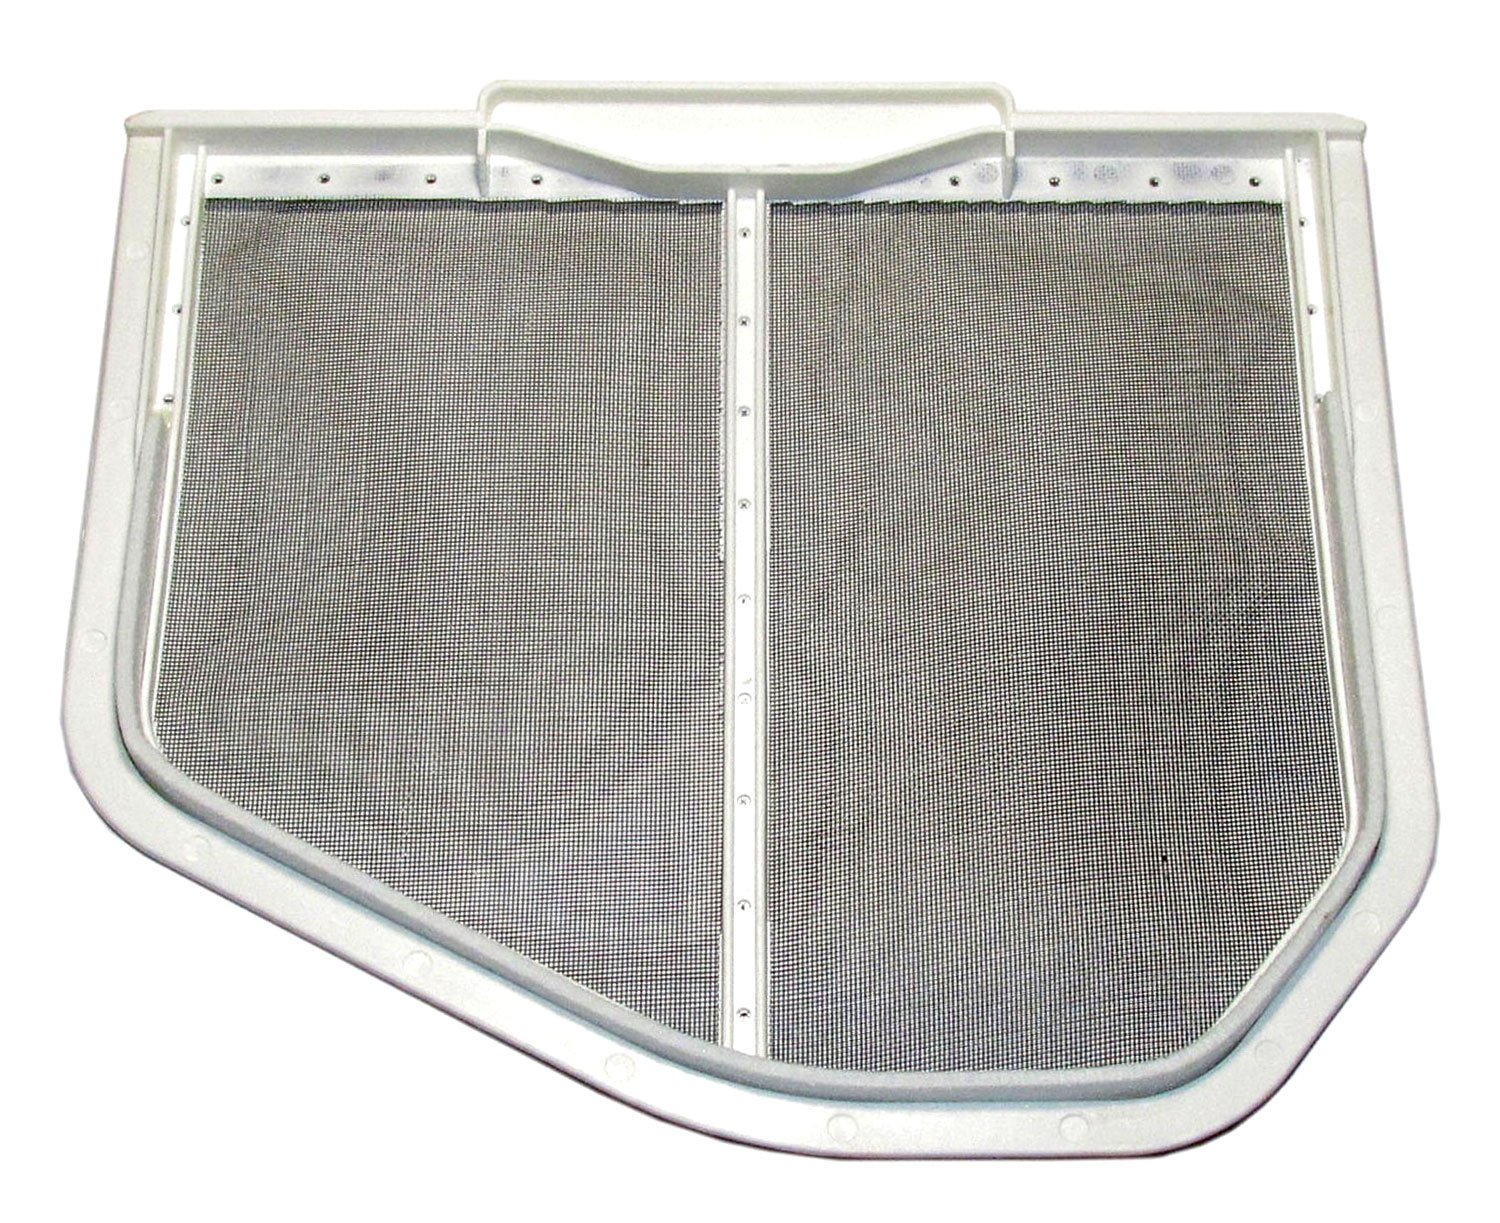 Dryer Lint Screen Filter that works with Kenmore/Sears 11097284100